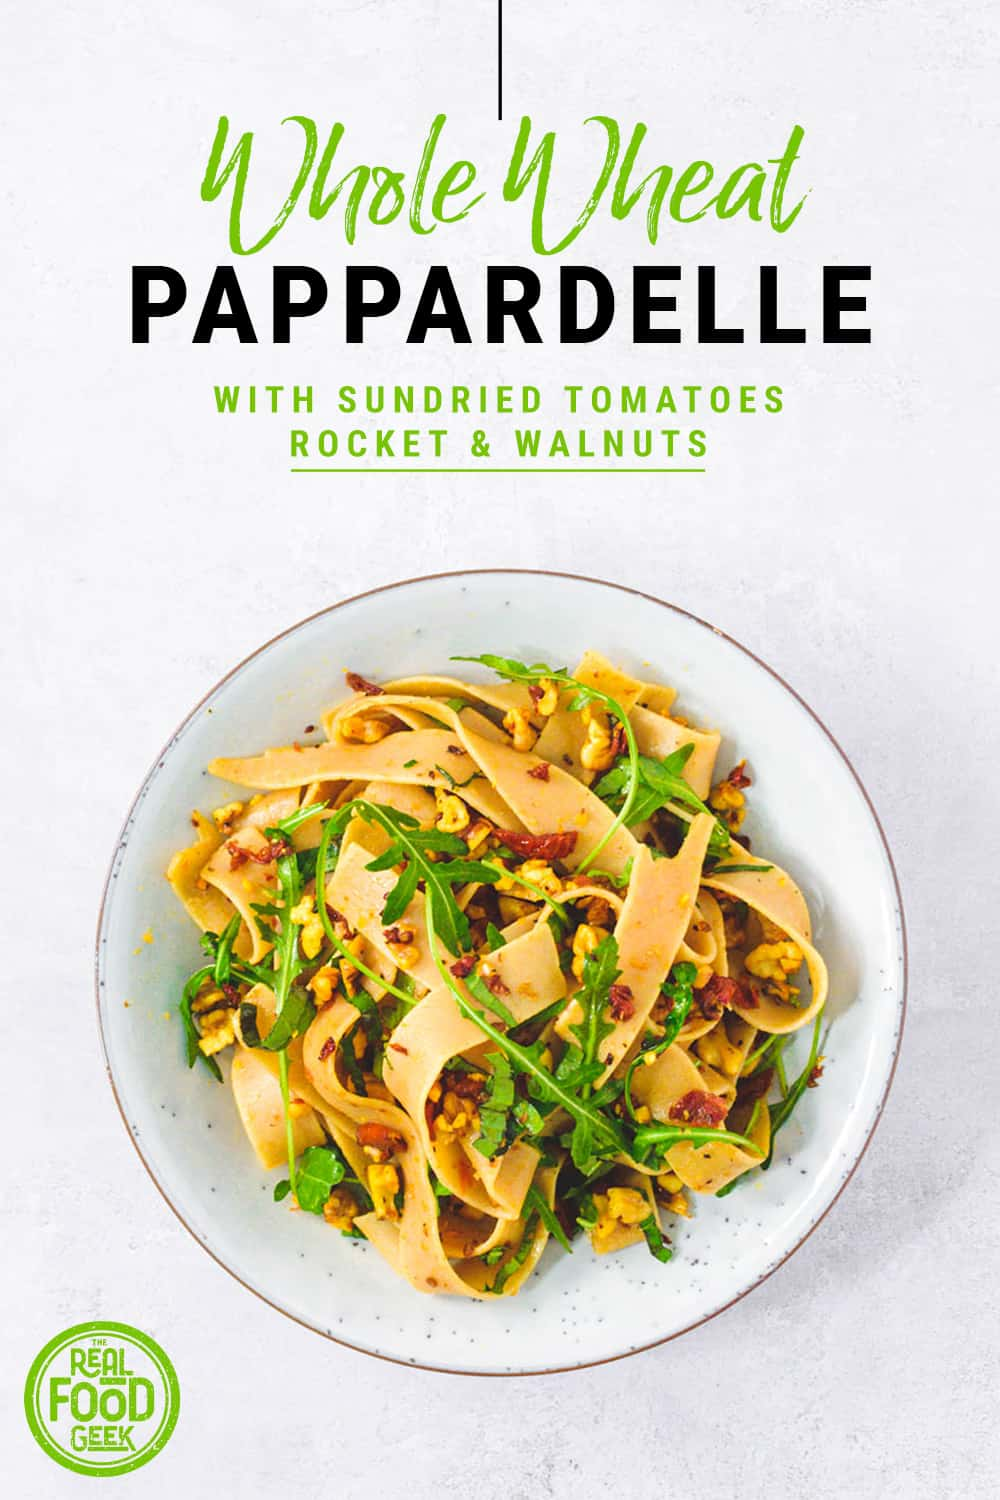 Birdseye view of whole wheat pappardelle with sundried tomatoes, rocket and walnuts